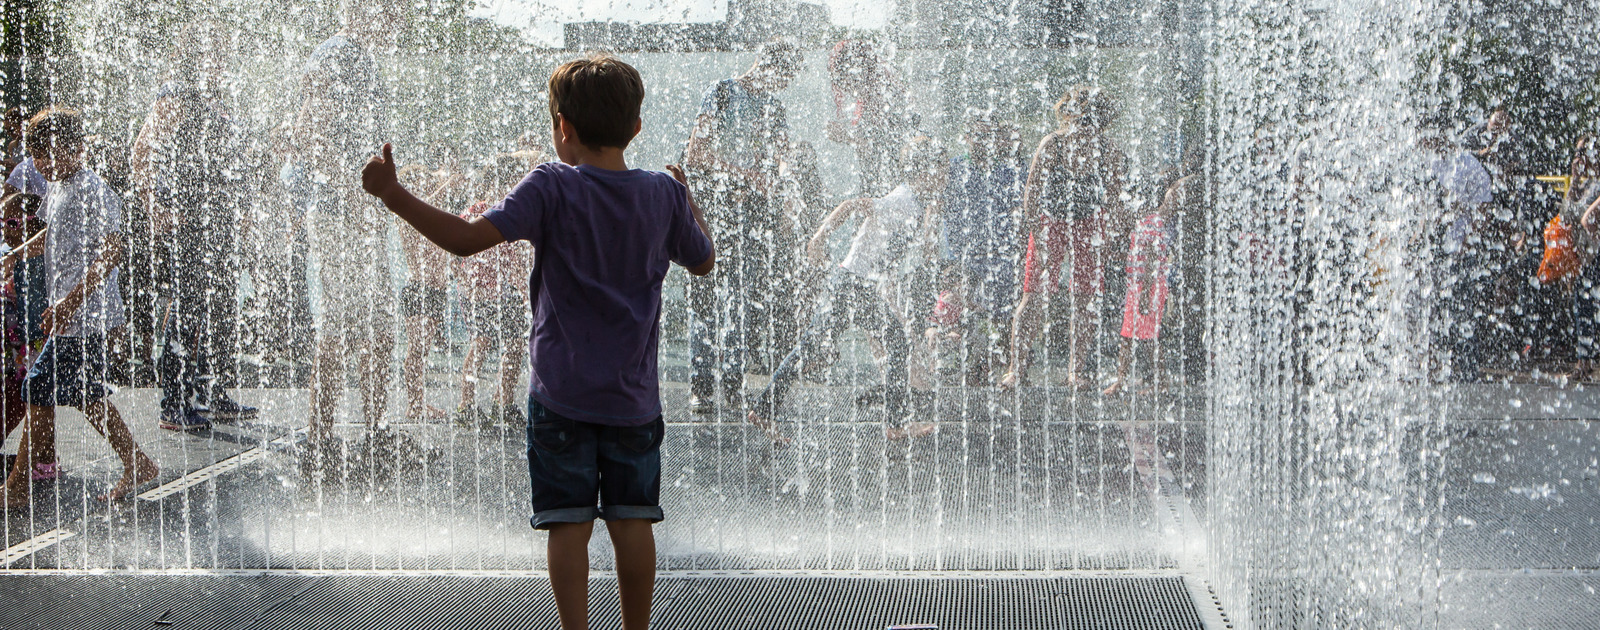 Children jumping in Jeppe Hein's Appearing Room Fountains